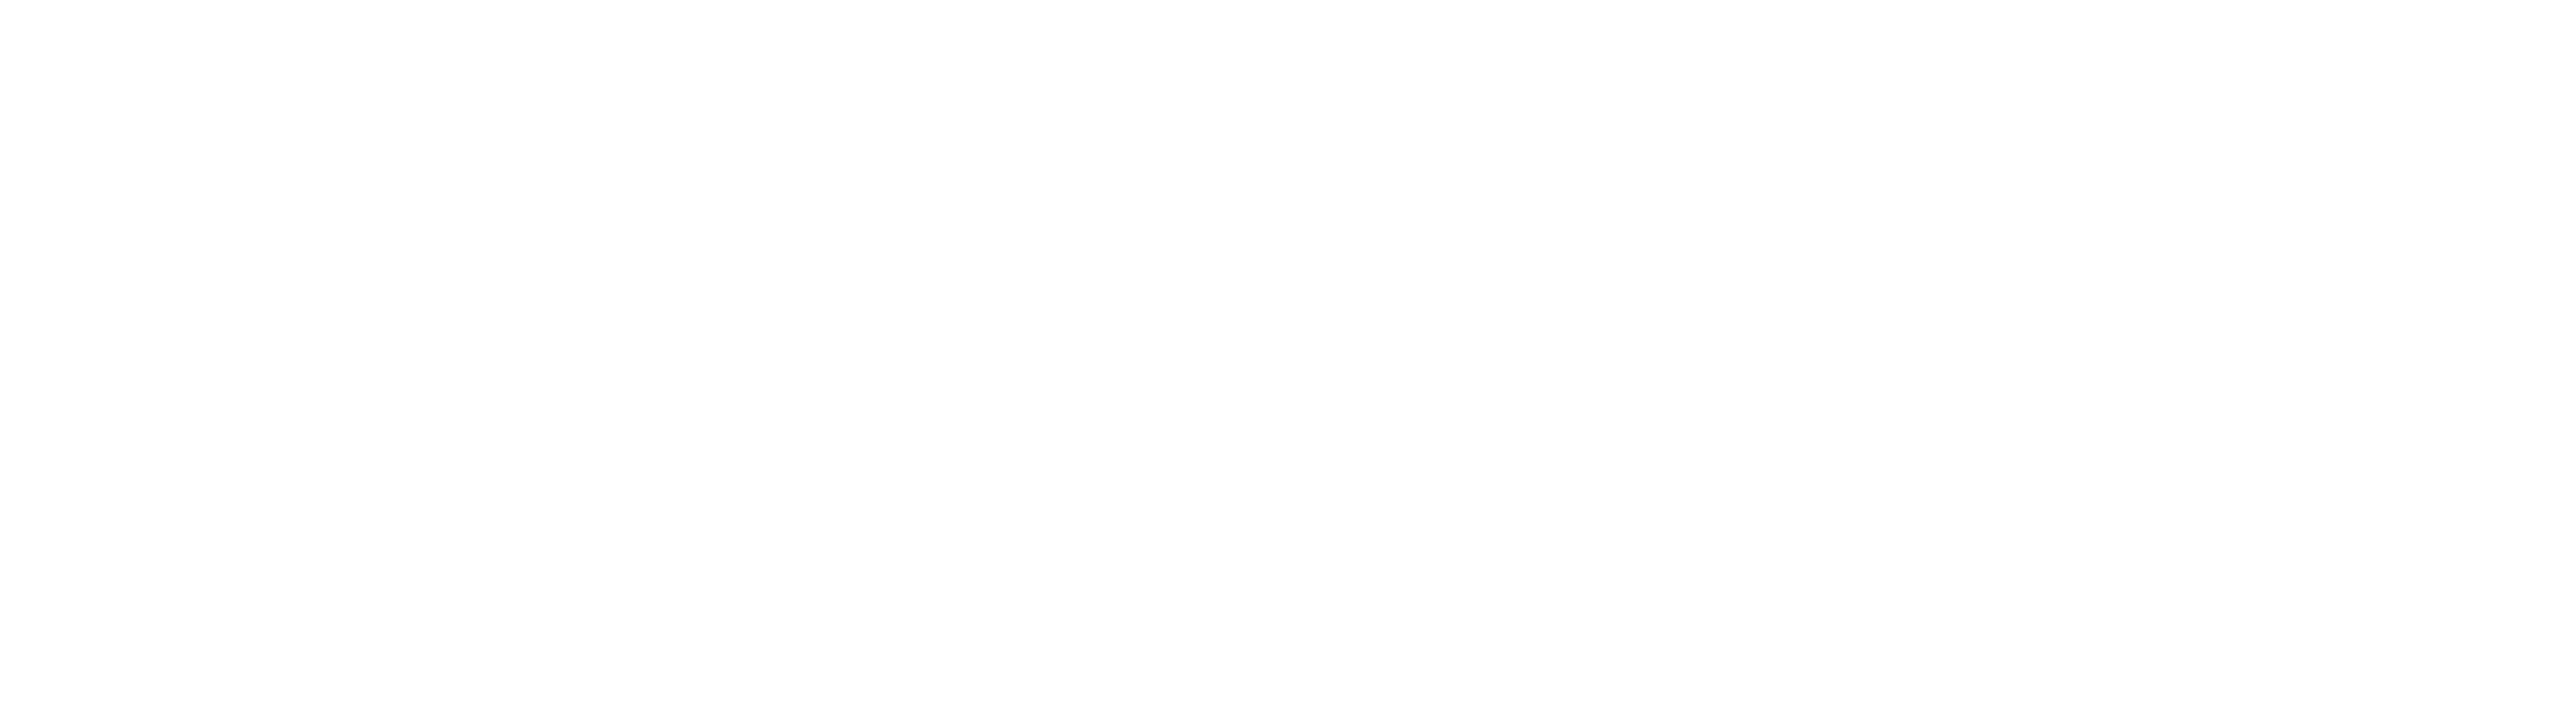 Grant Attorneys At Law